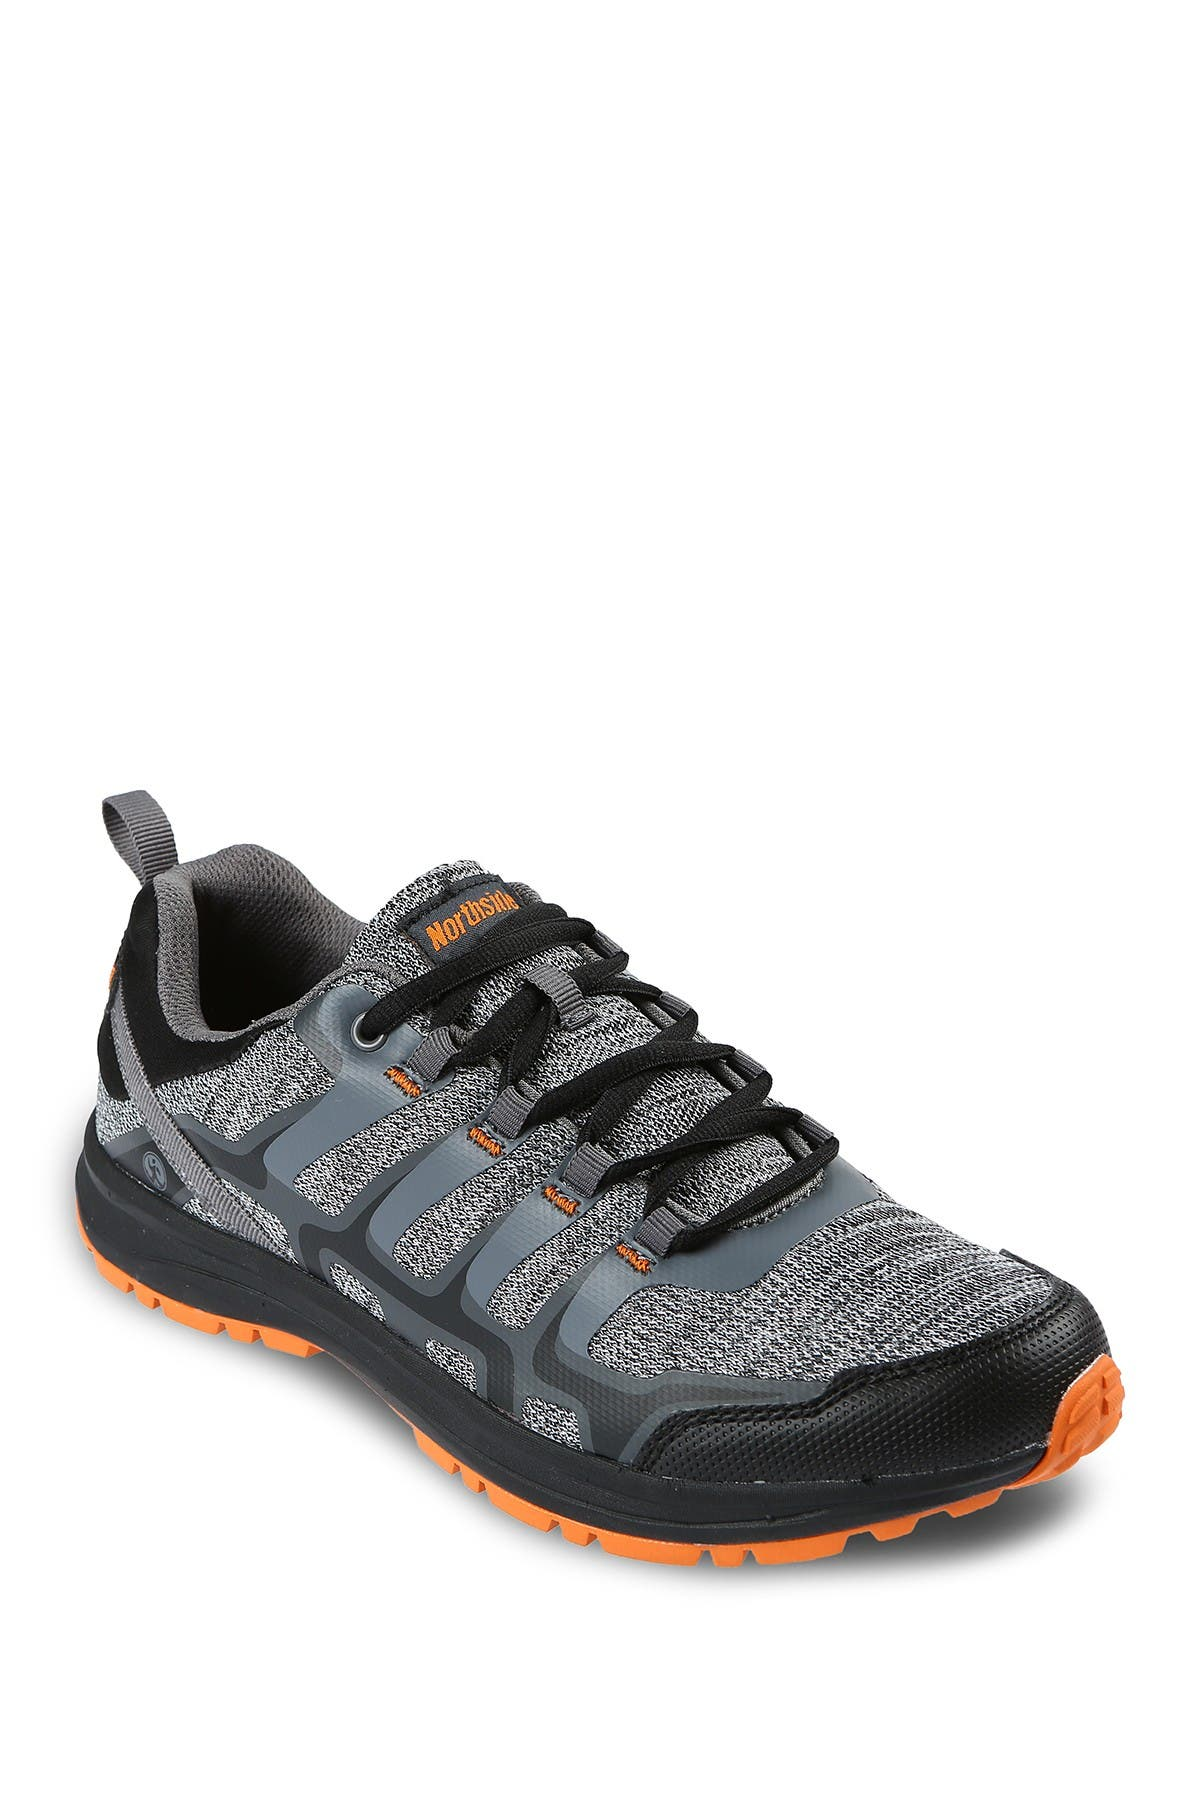 Image of NORTHSIDE Cypress Athletic Hiking Shoe